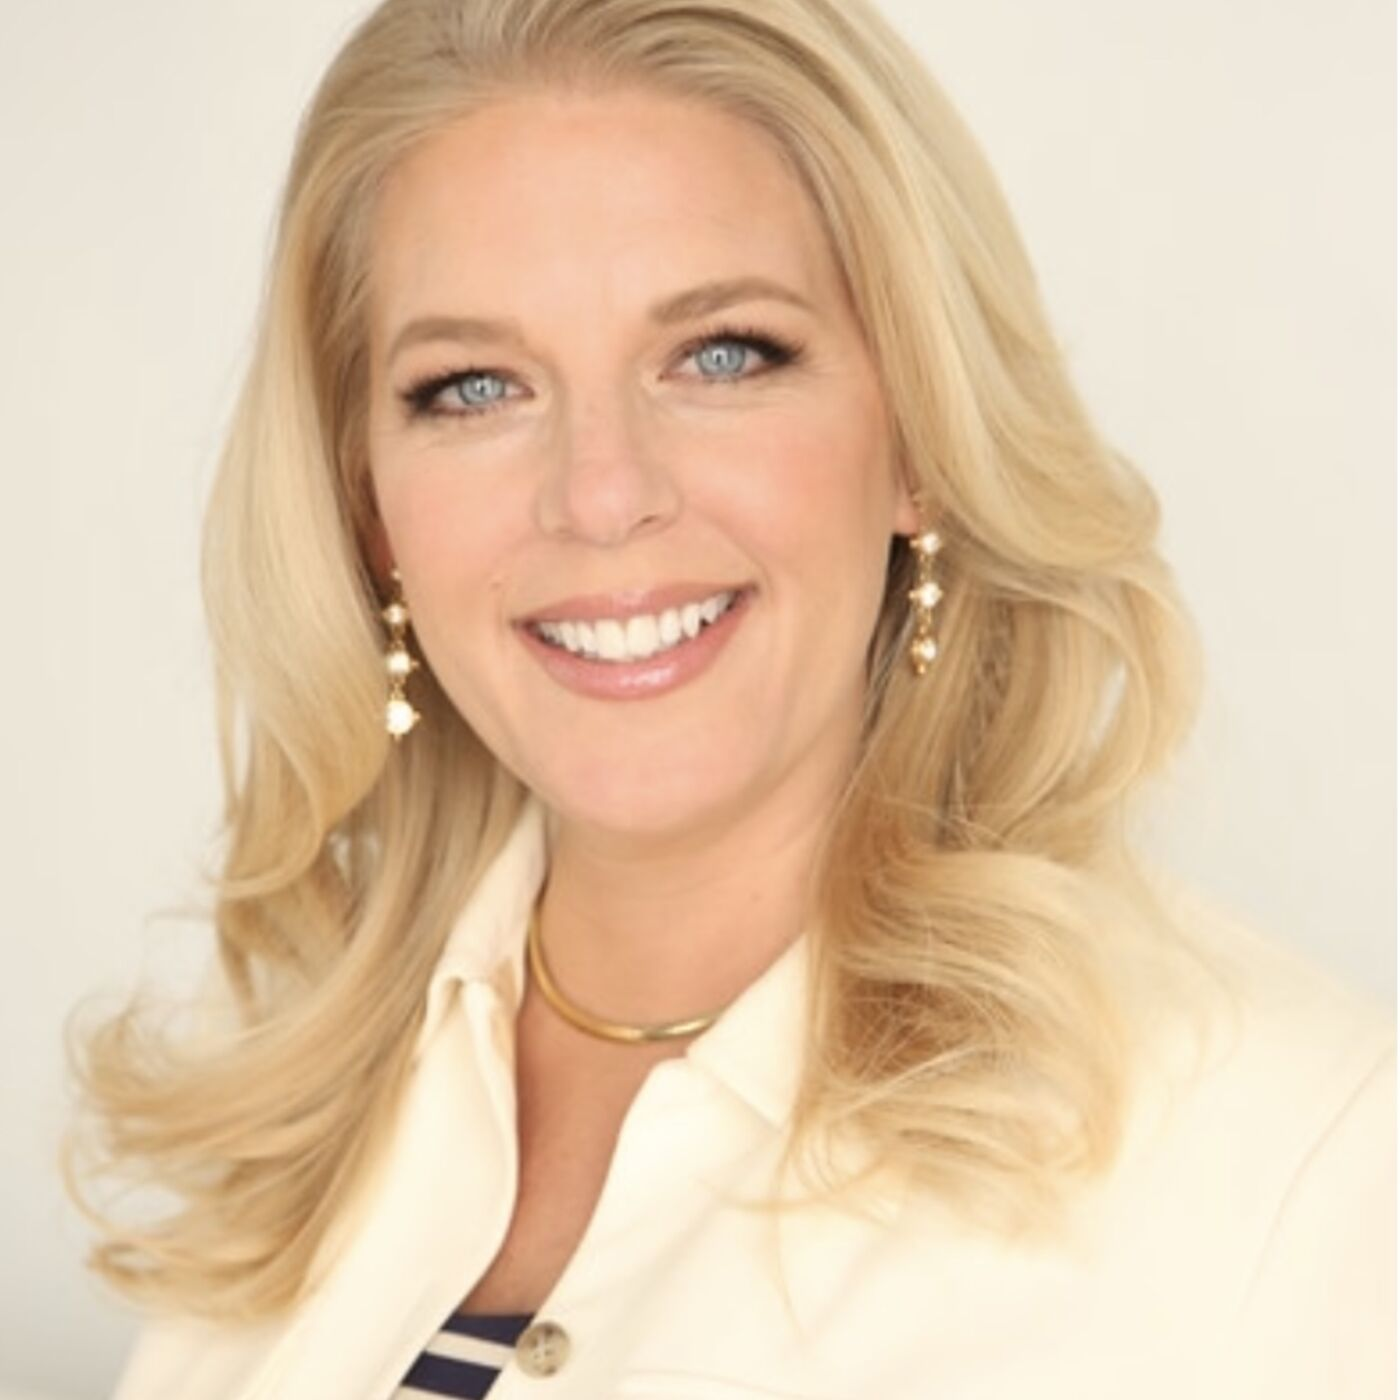 Dorcy Pruter, Founder and CEO Of Conscious Co-Parenting Institute Discusses Reunification And Strategies For Parents To Reconnect And Stay Connected With Their Children During And After High-Conflict Divorce